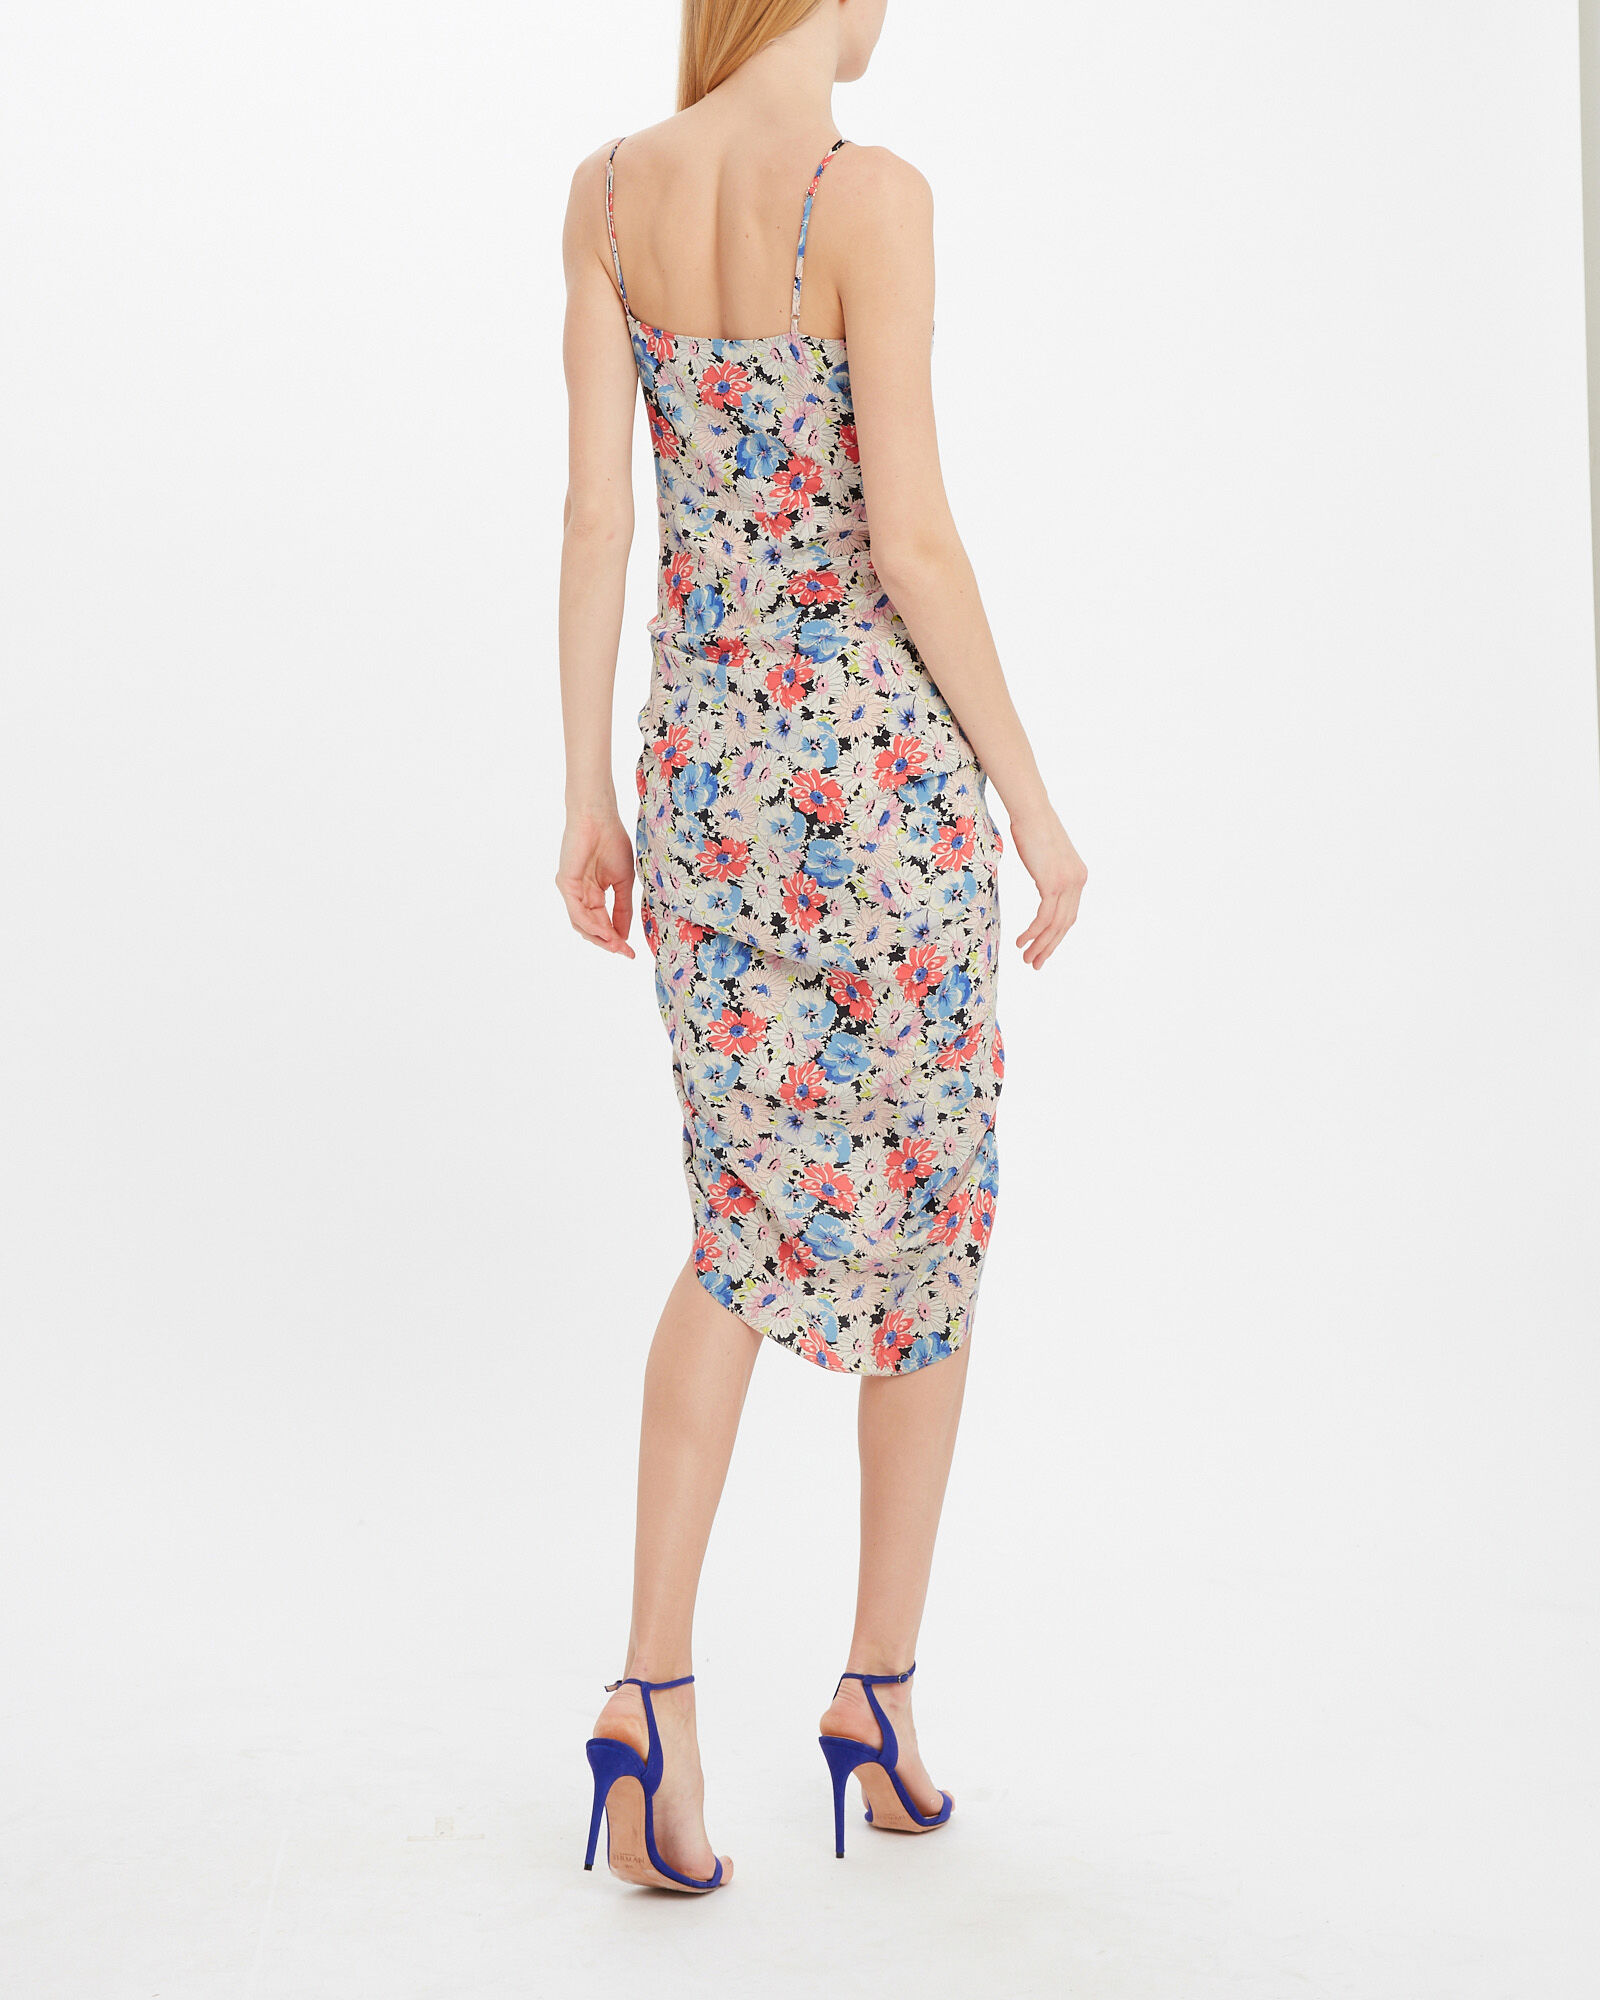 Annabelle Silk Ruched Floral Dress, RED/BLUE FLORAL, hi-res